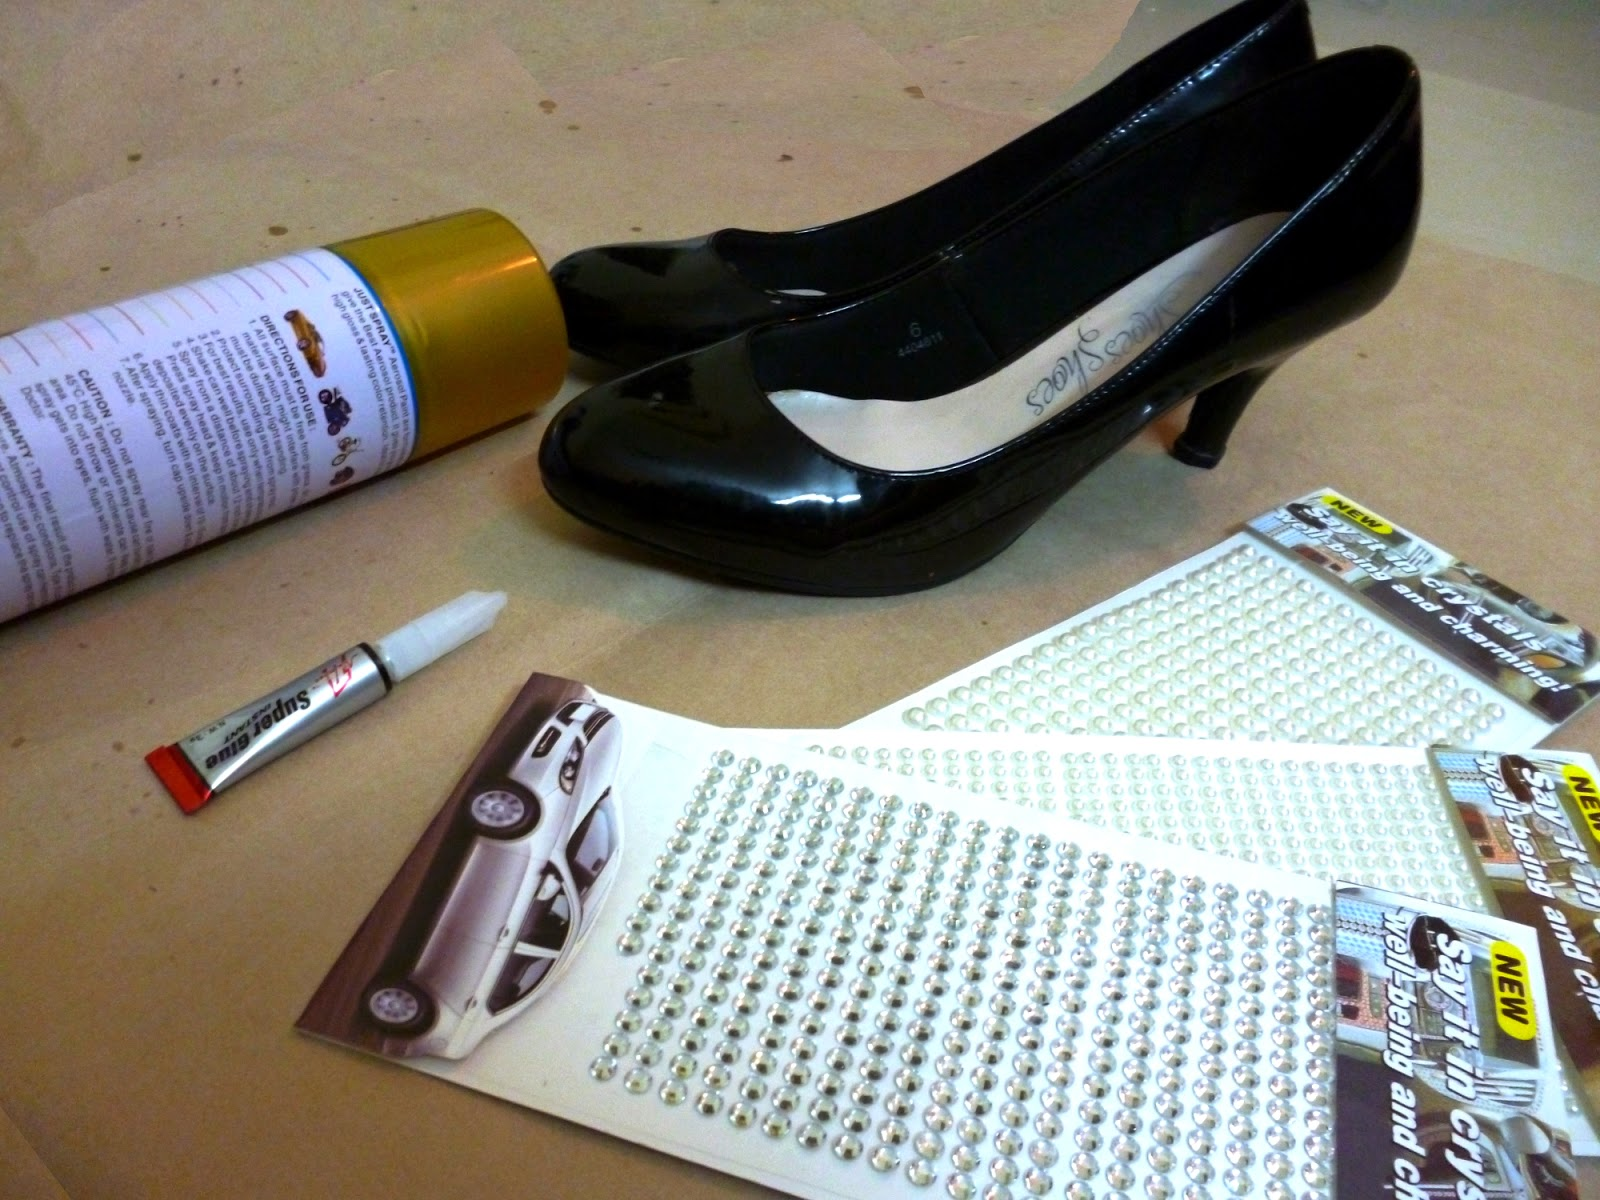 Jade Eclectic Diy The Great Gatsby Inspired Pearly Heels Results For Circuit Writer Pen Saturday March 15 2014